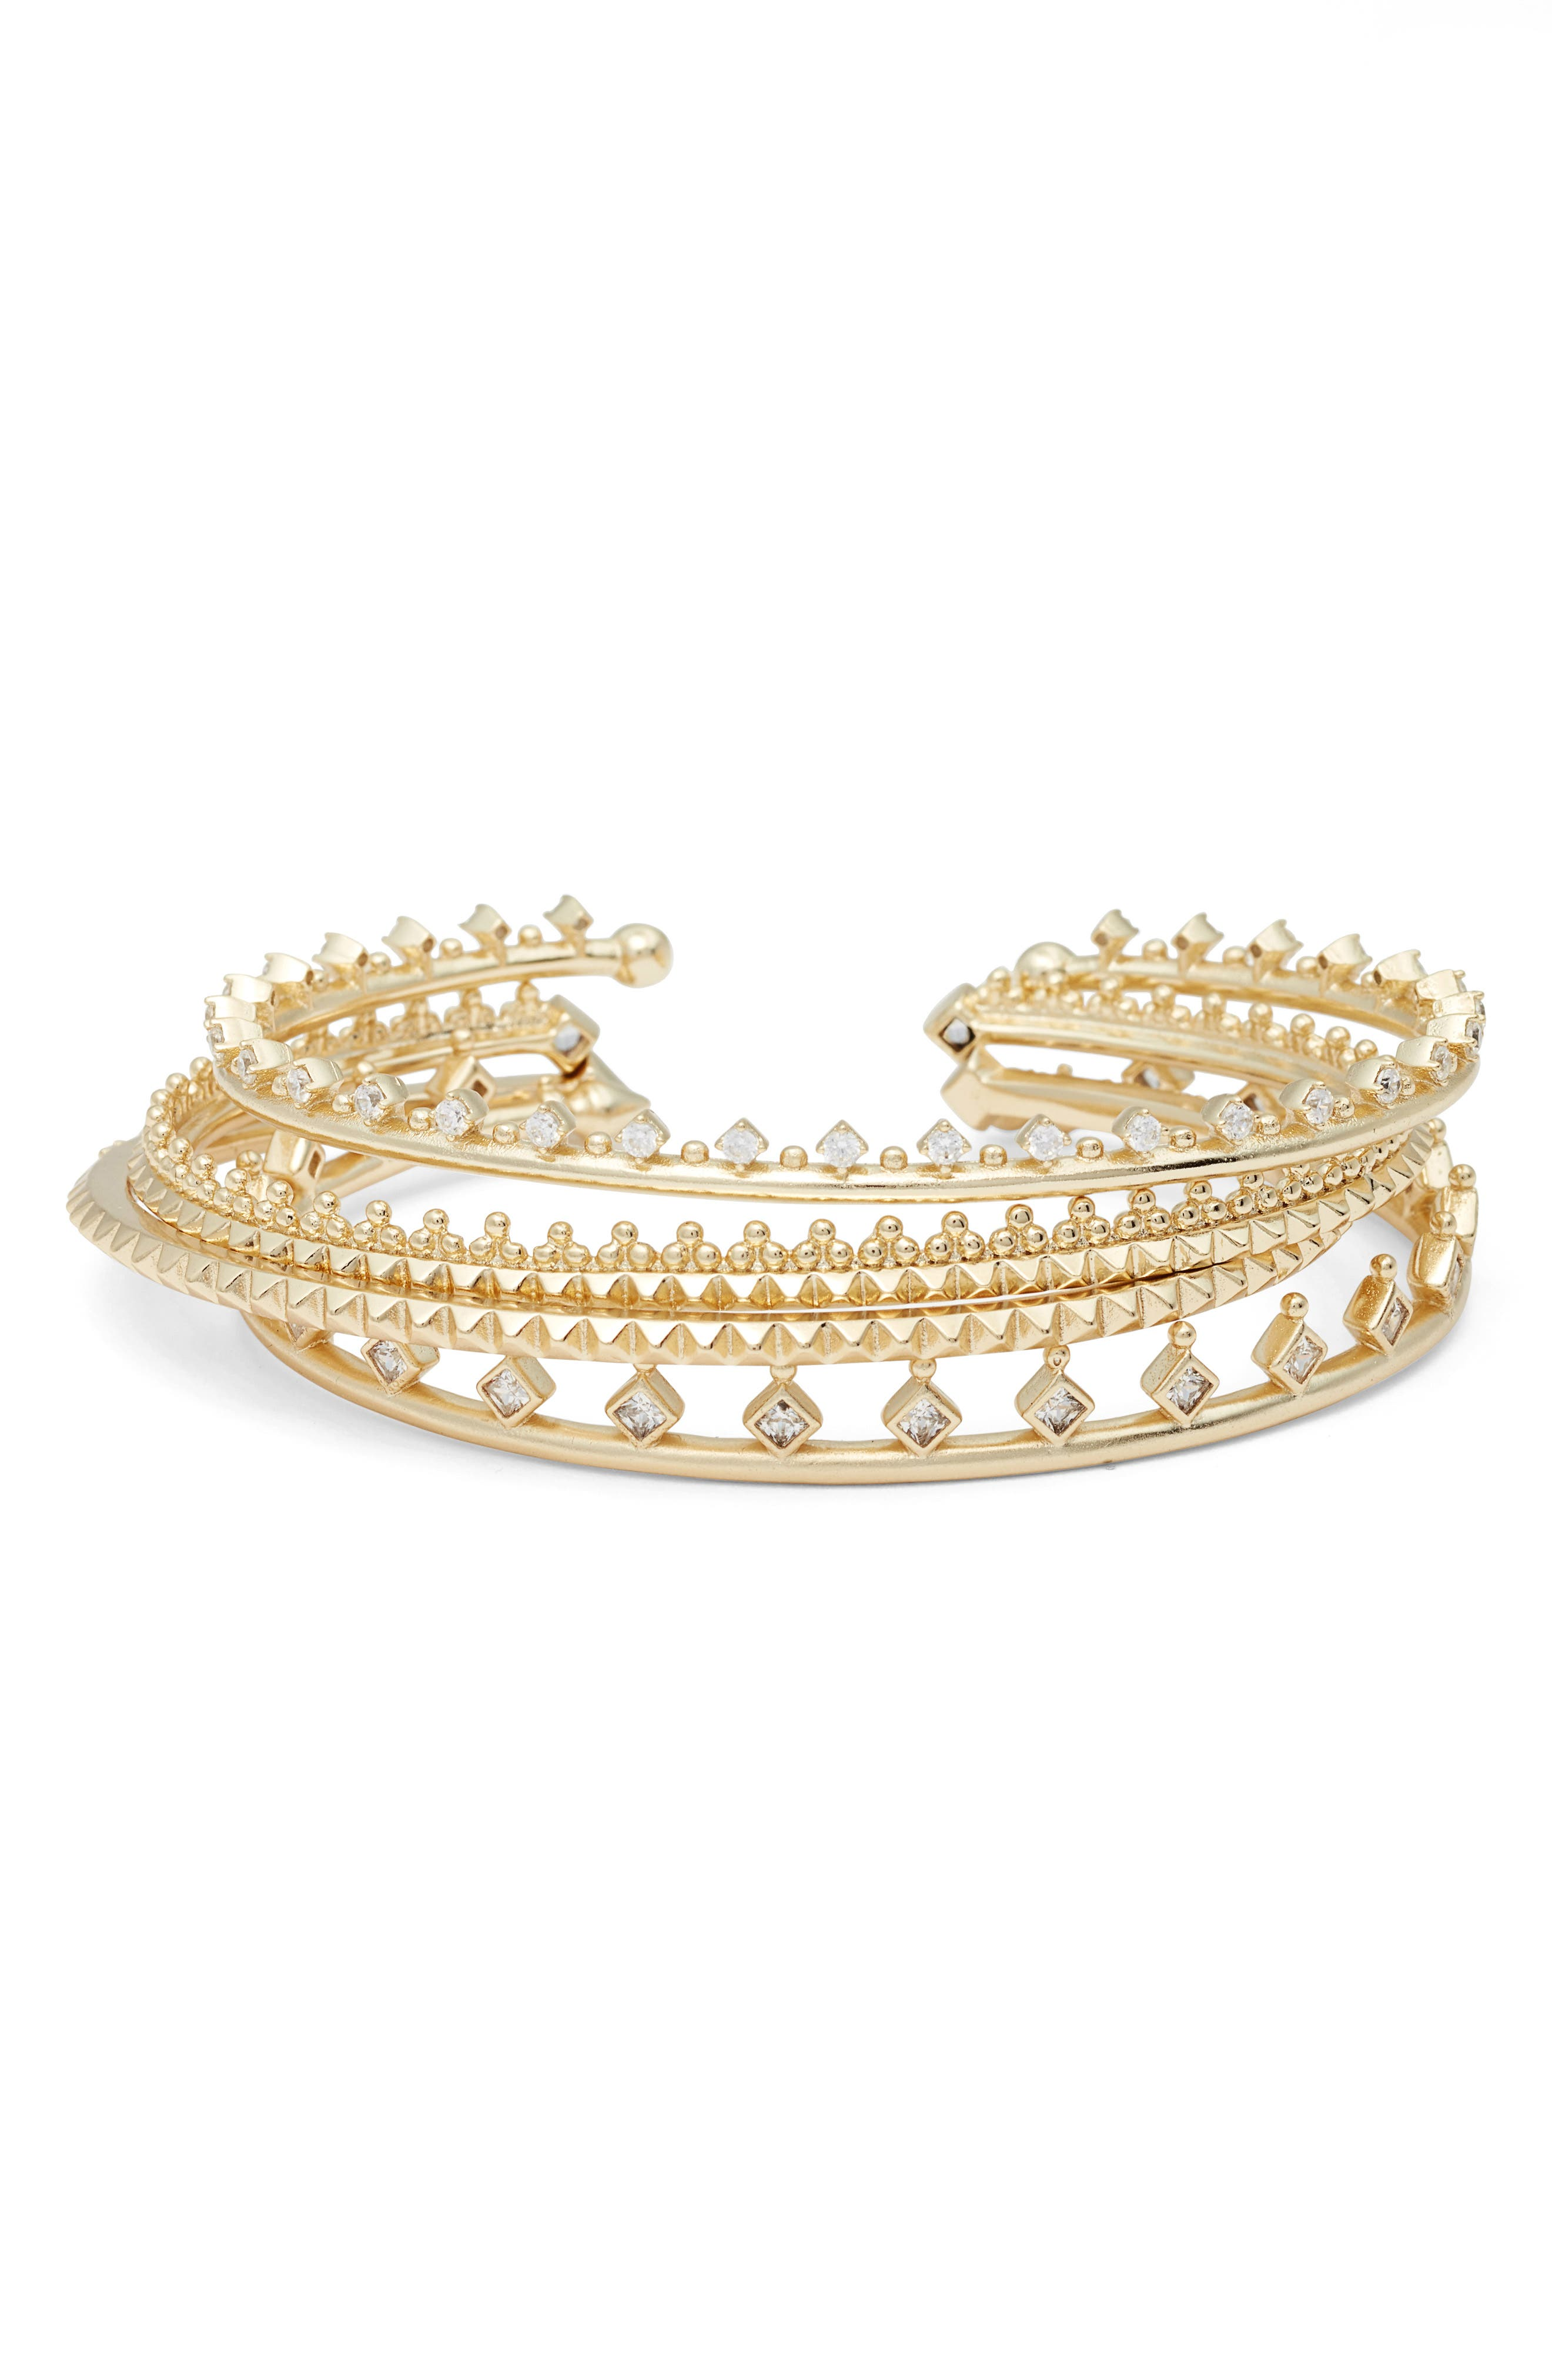 Kendra Scott Delphine Set of 4 Stackable Cuffs